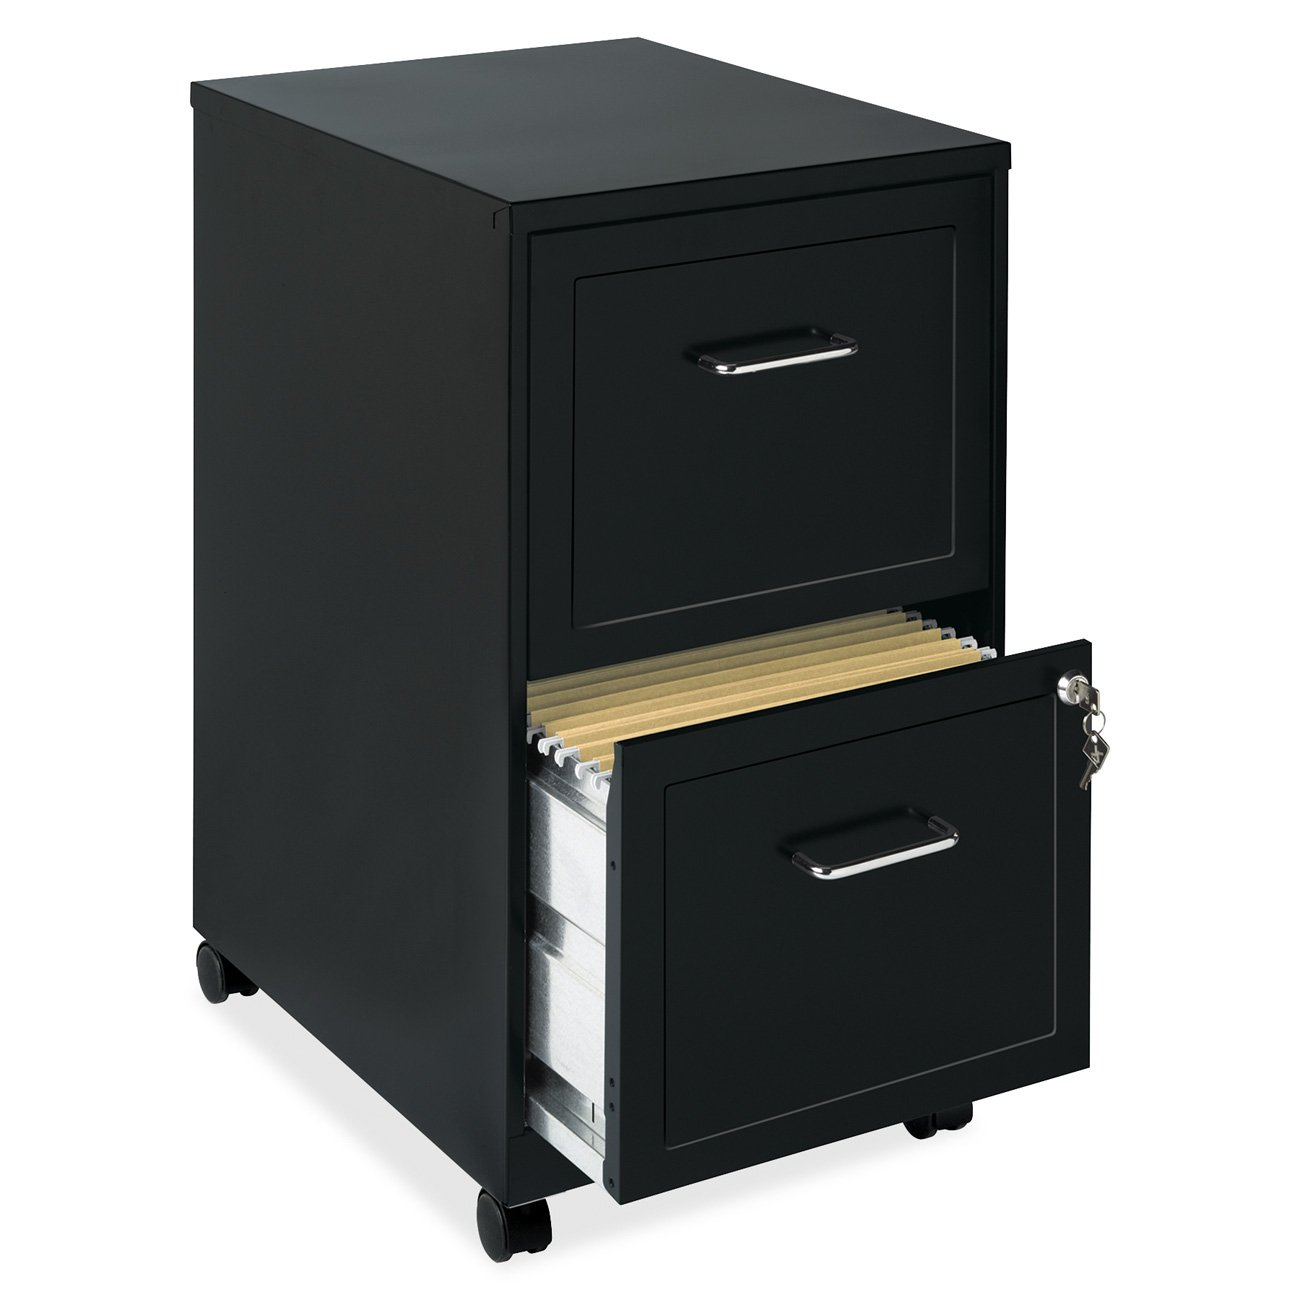 small office cabinets. product details small office cabinets c